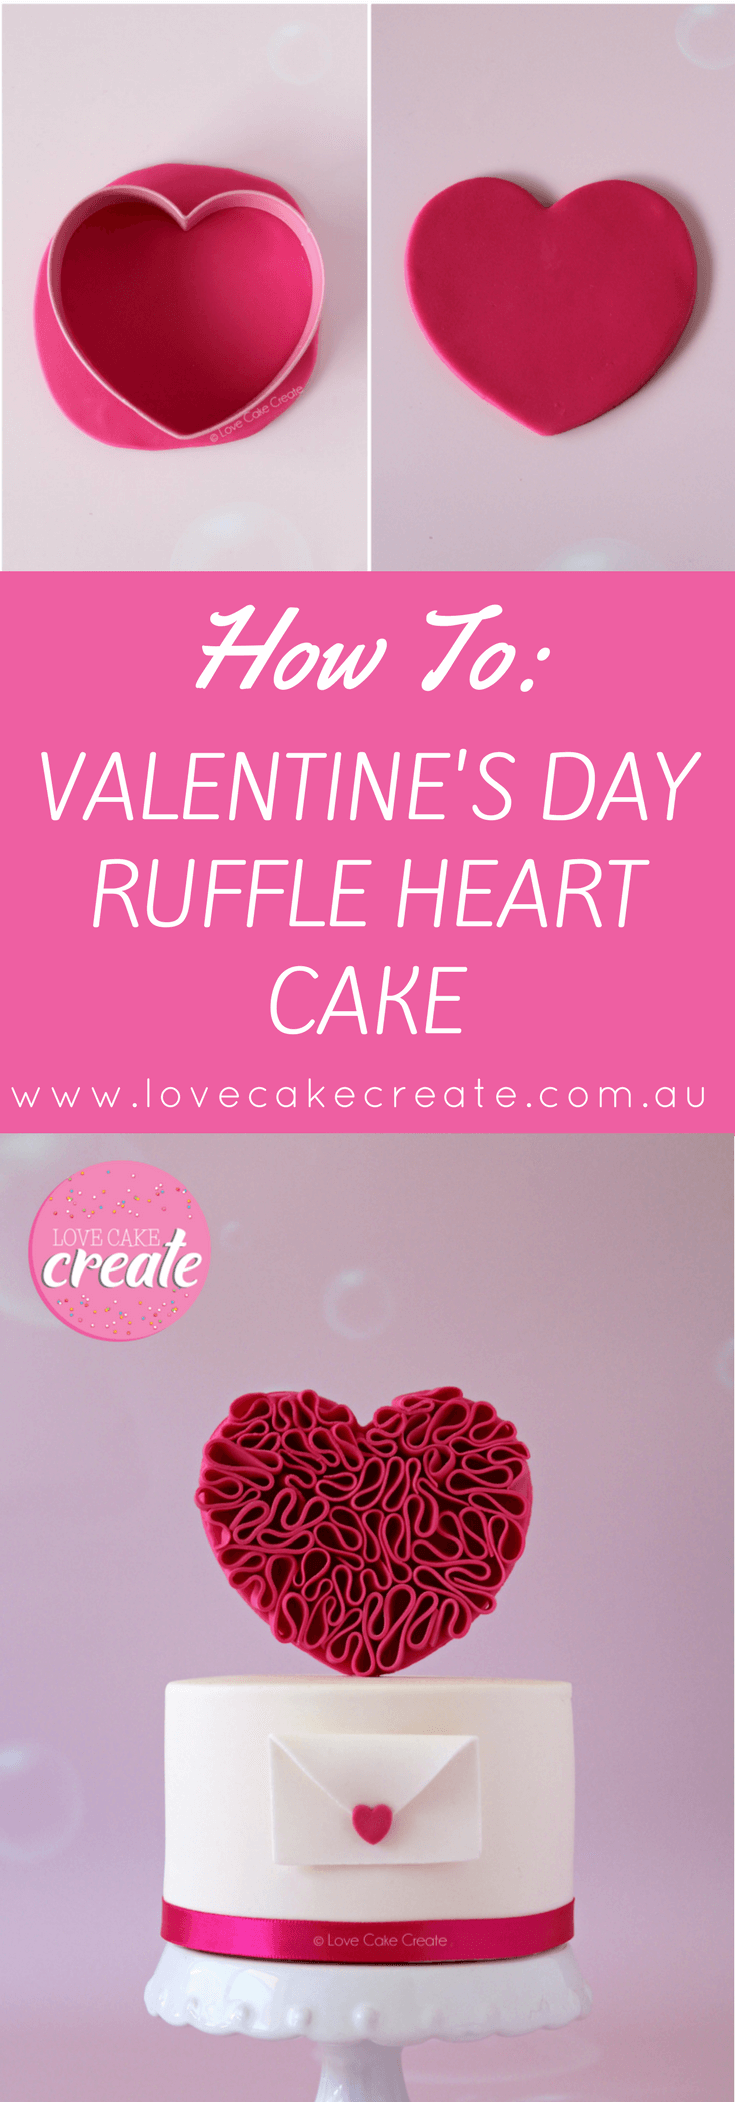 Valentine's Day Ruffle Heart Cake Tutorial - by Love Cake Create